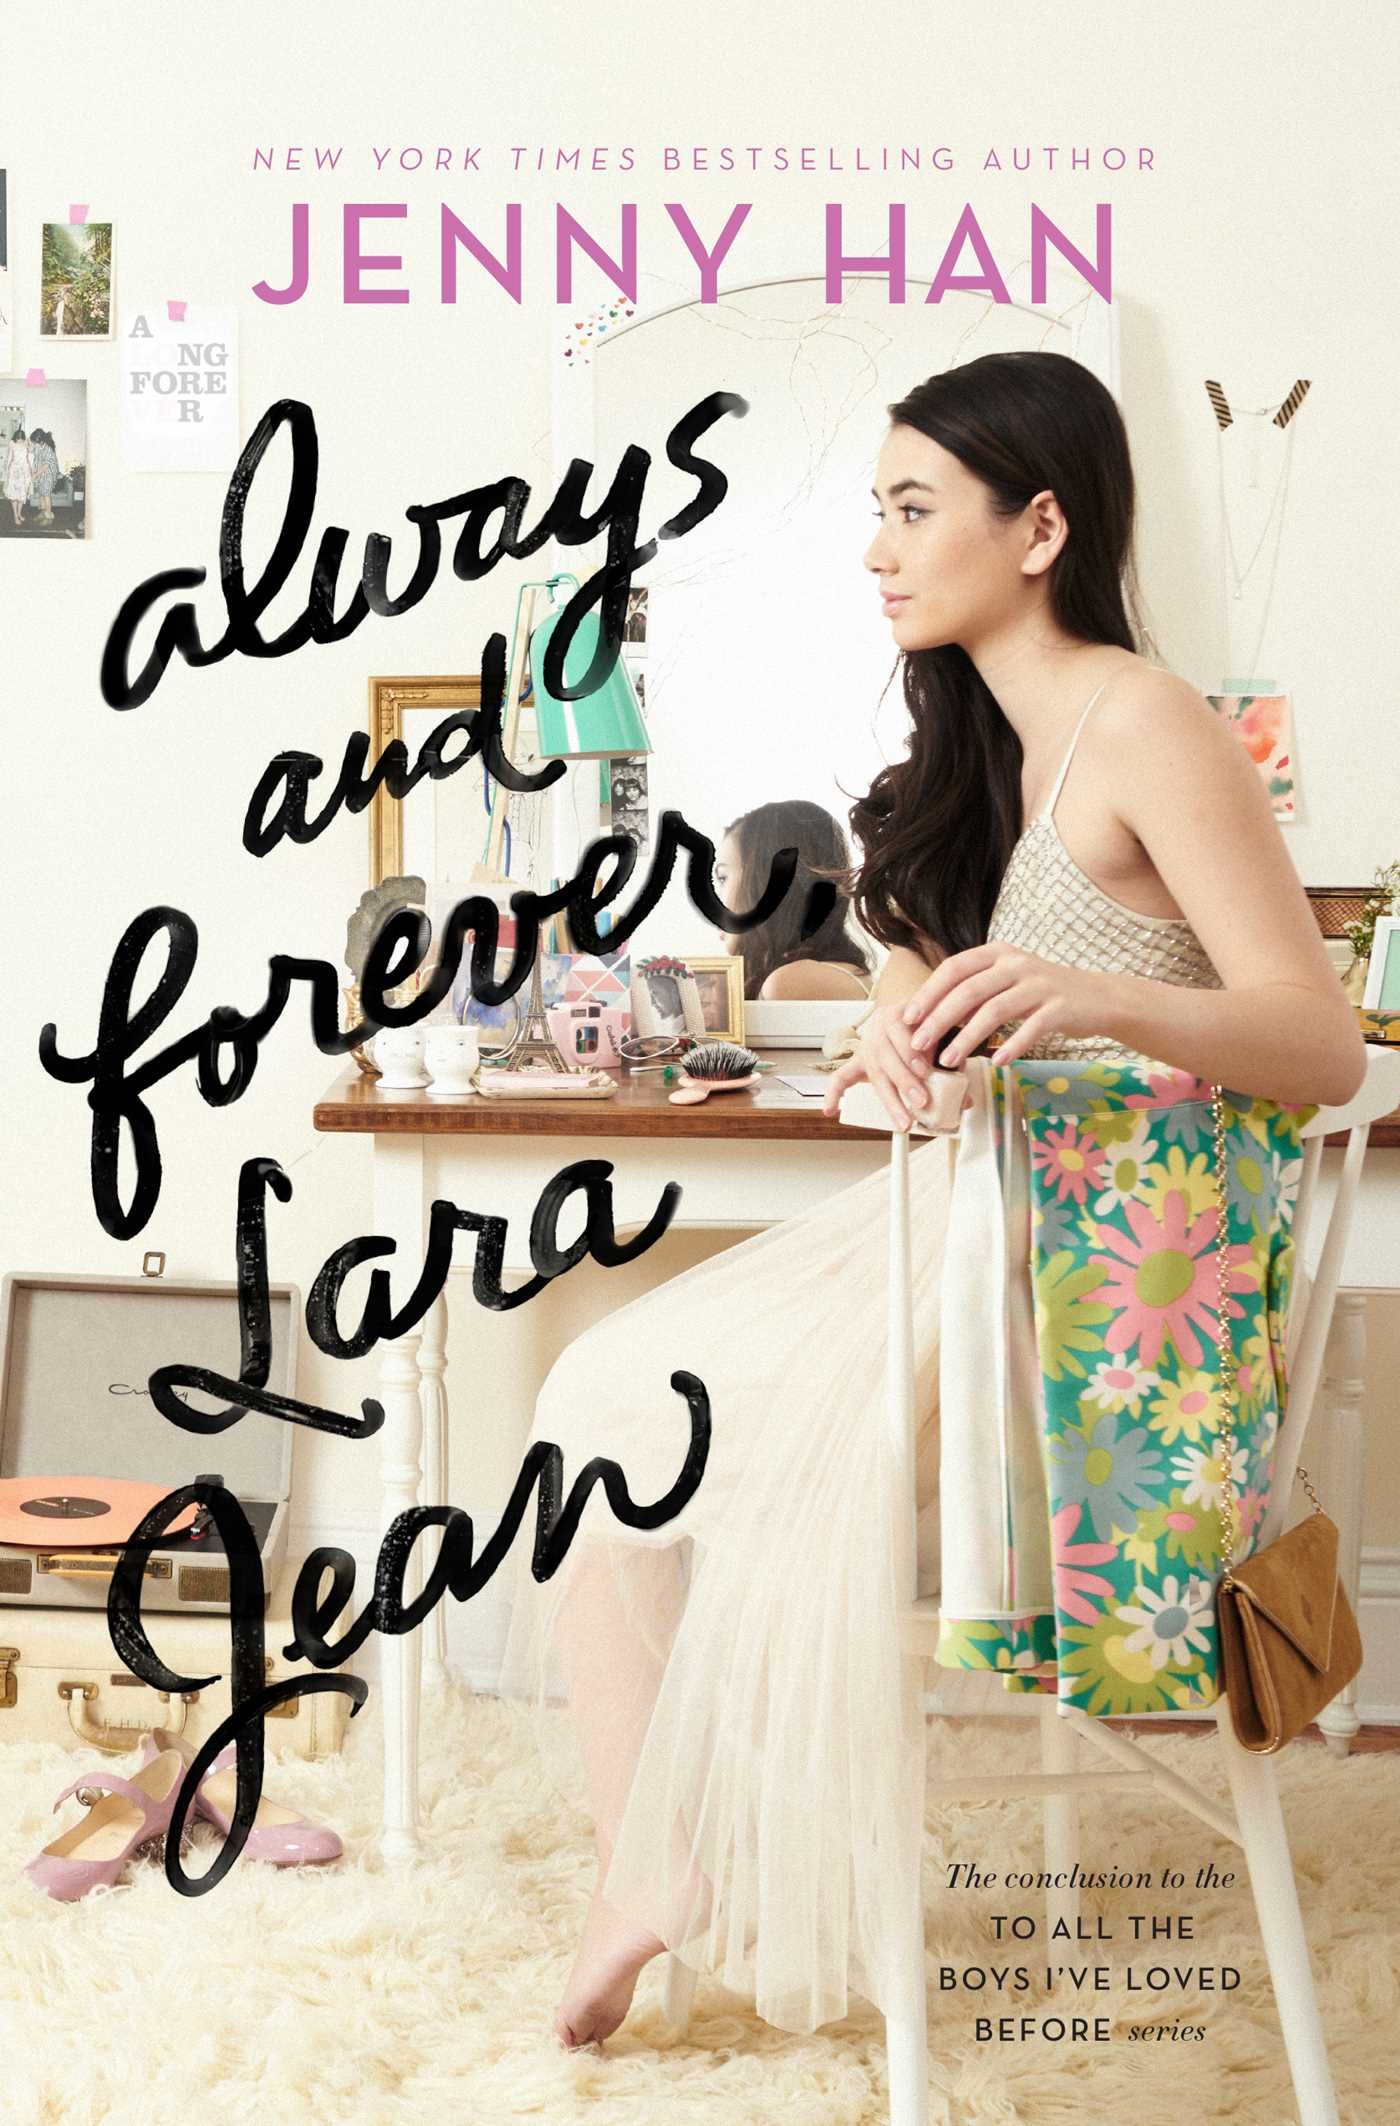 Always and forever lara jean 9781481430487 hr